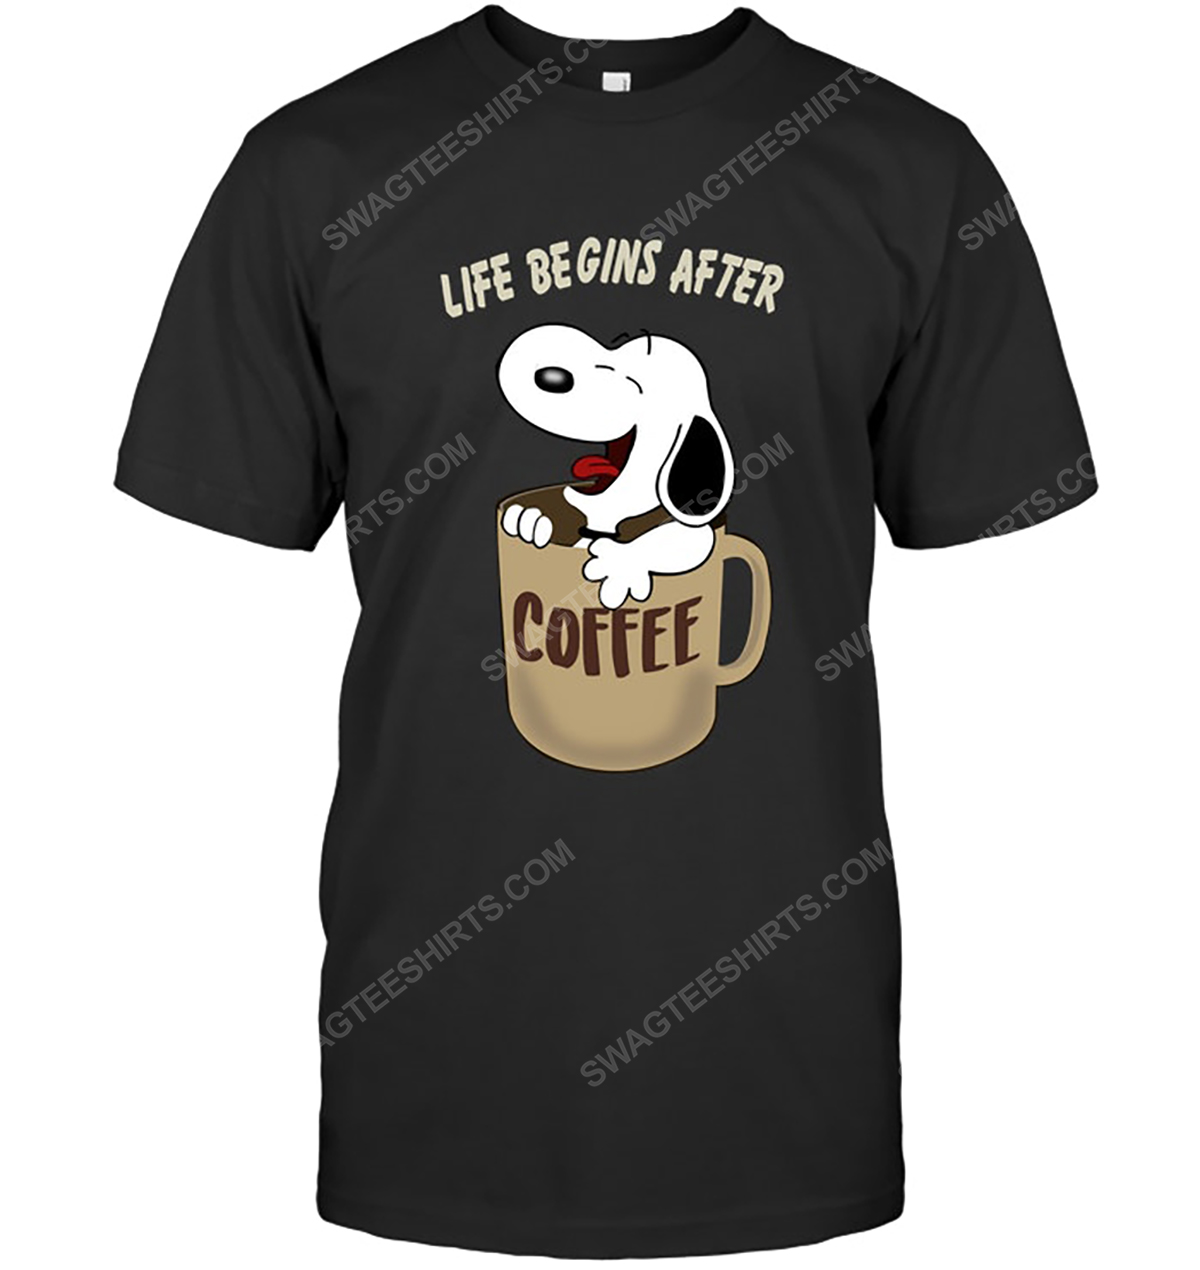 The peanuts snoopy life begins after coffee tshirt 1